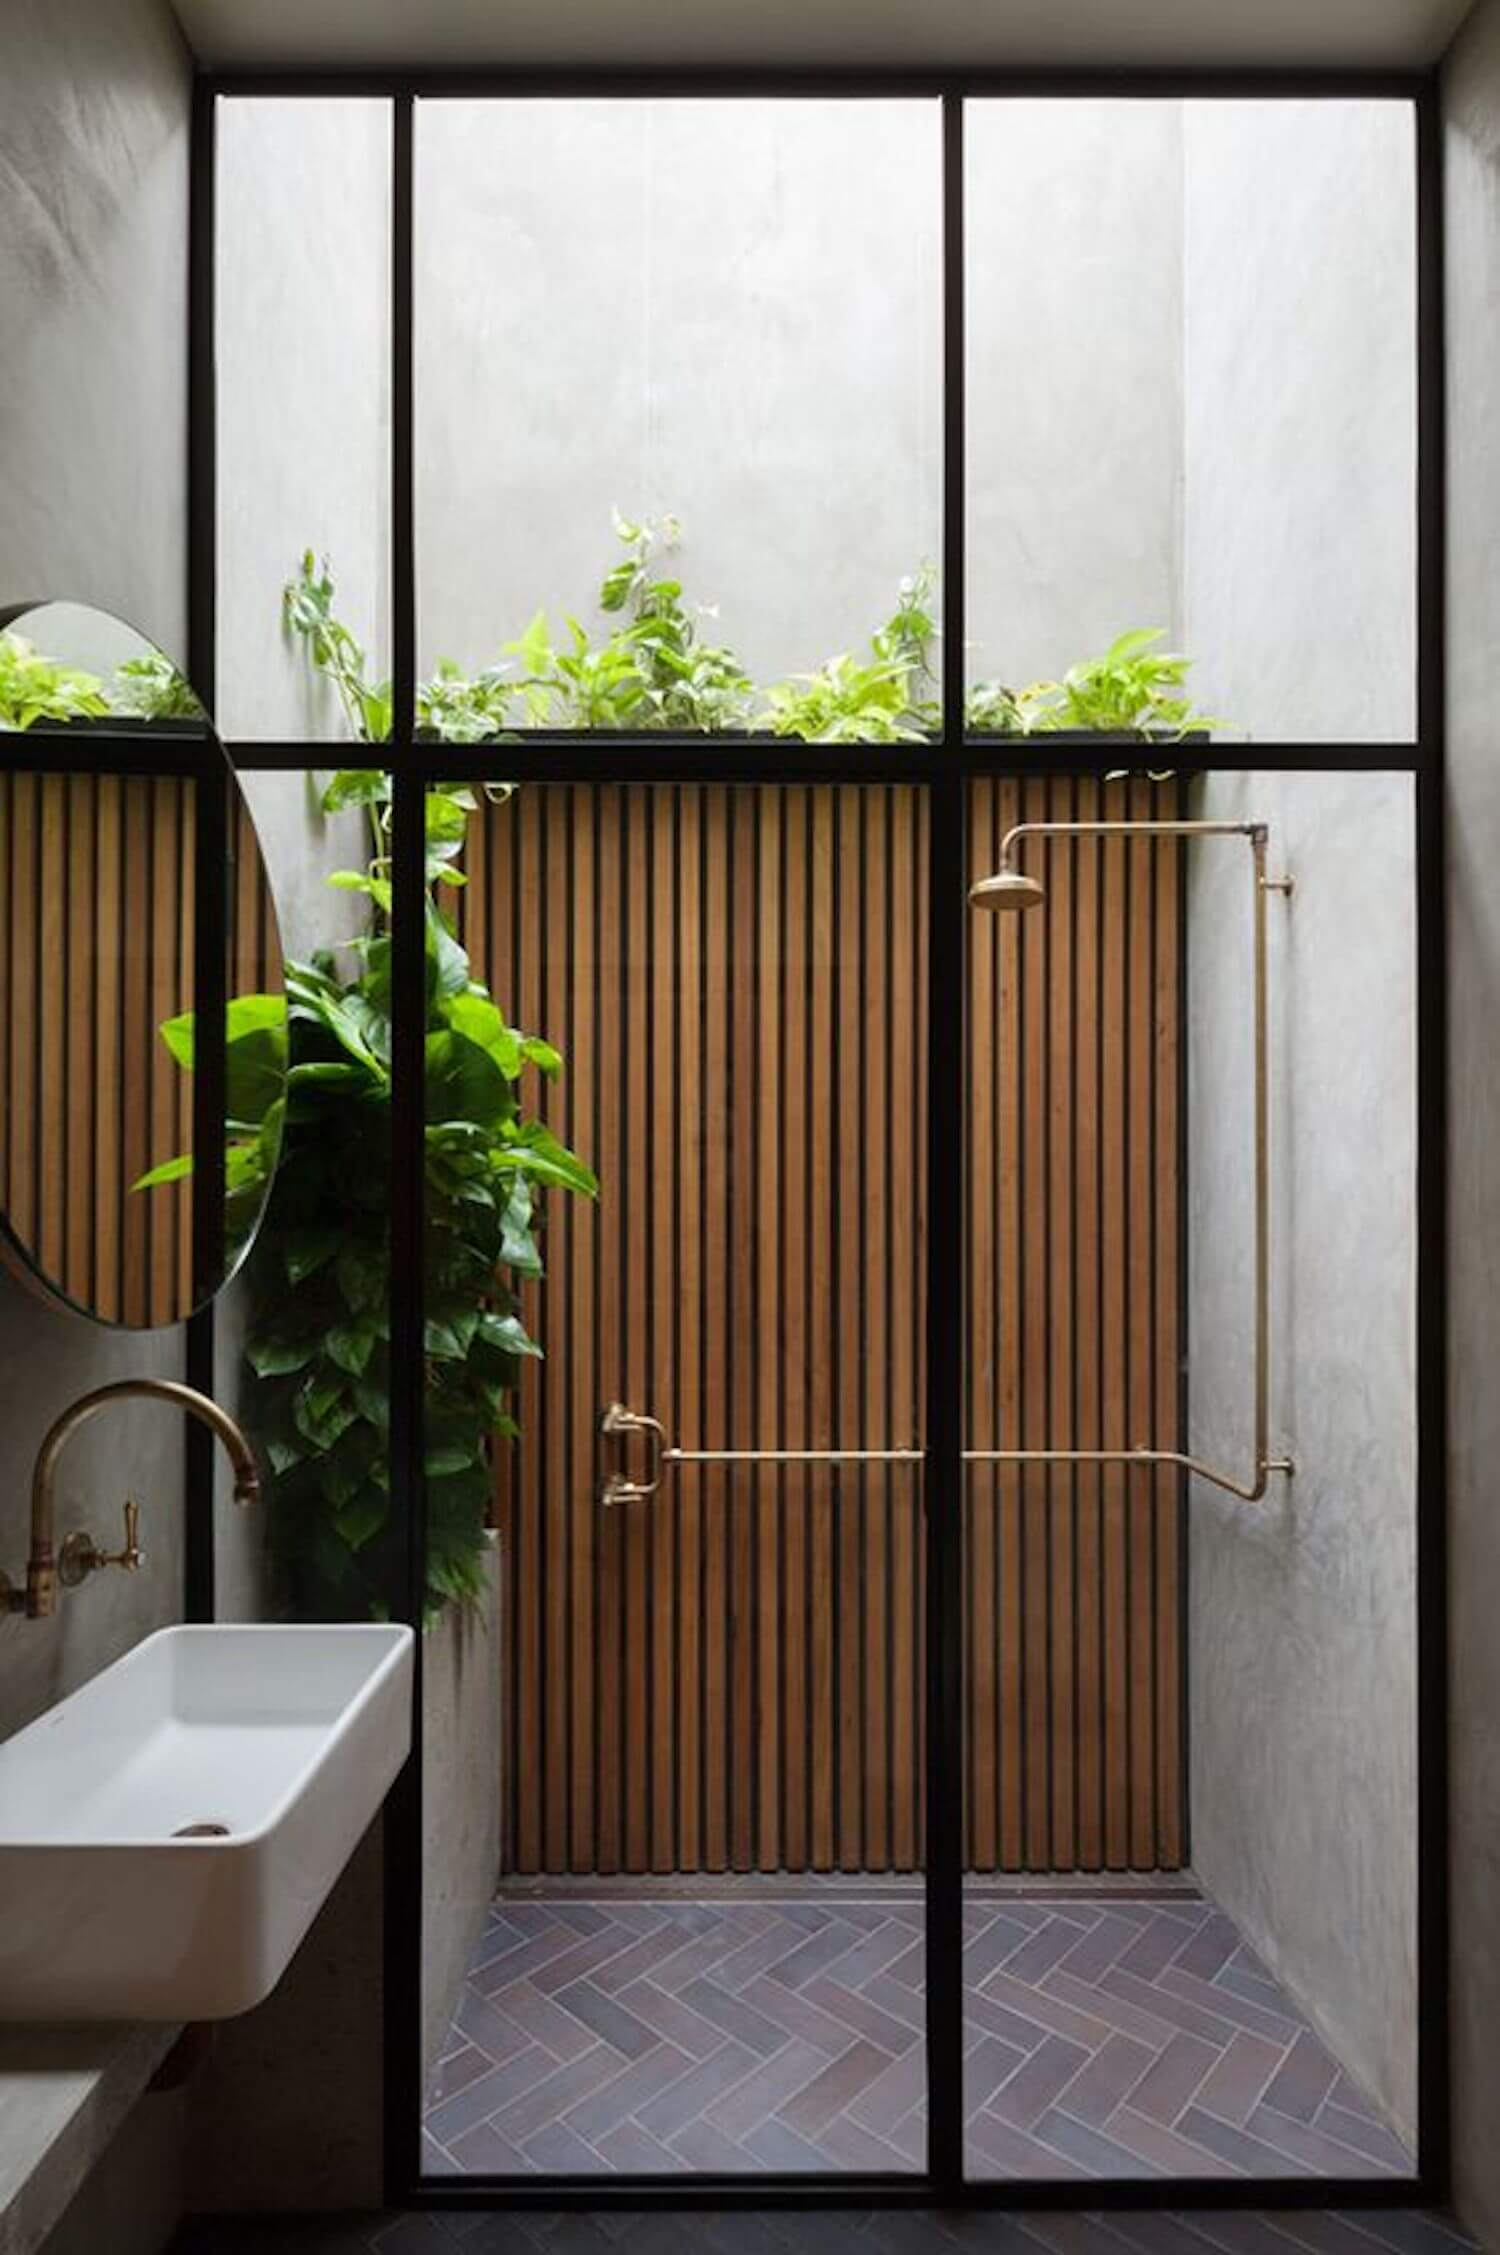 est living outdoor showers breathe architecture double life house